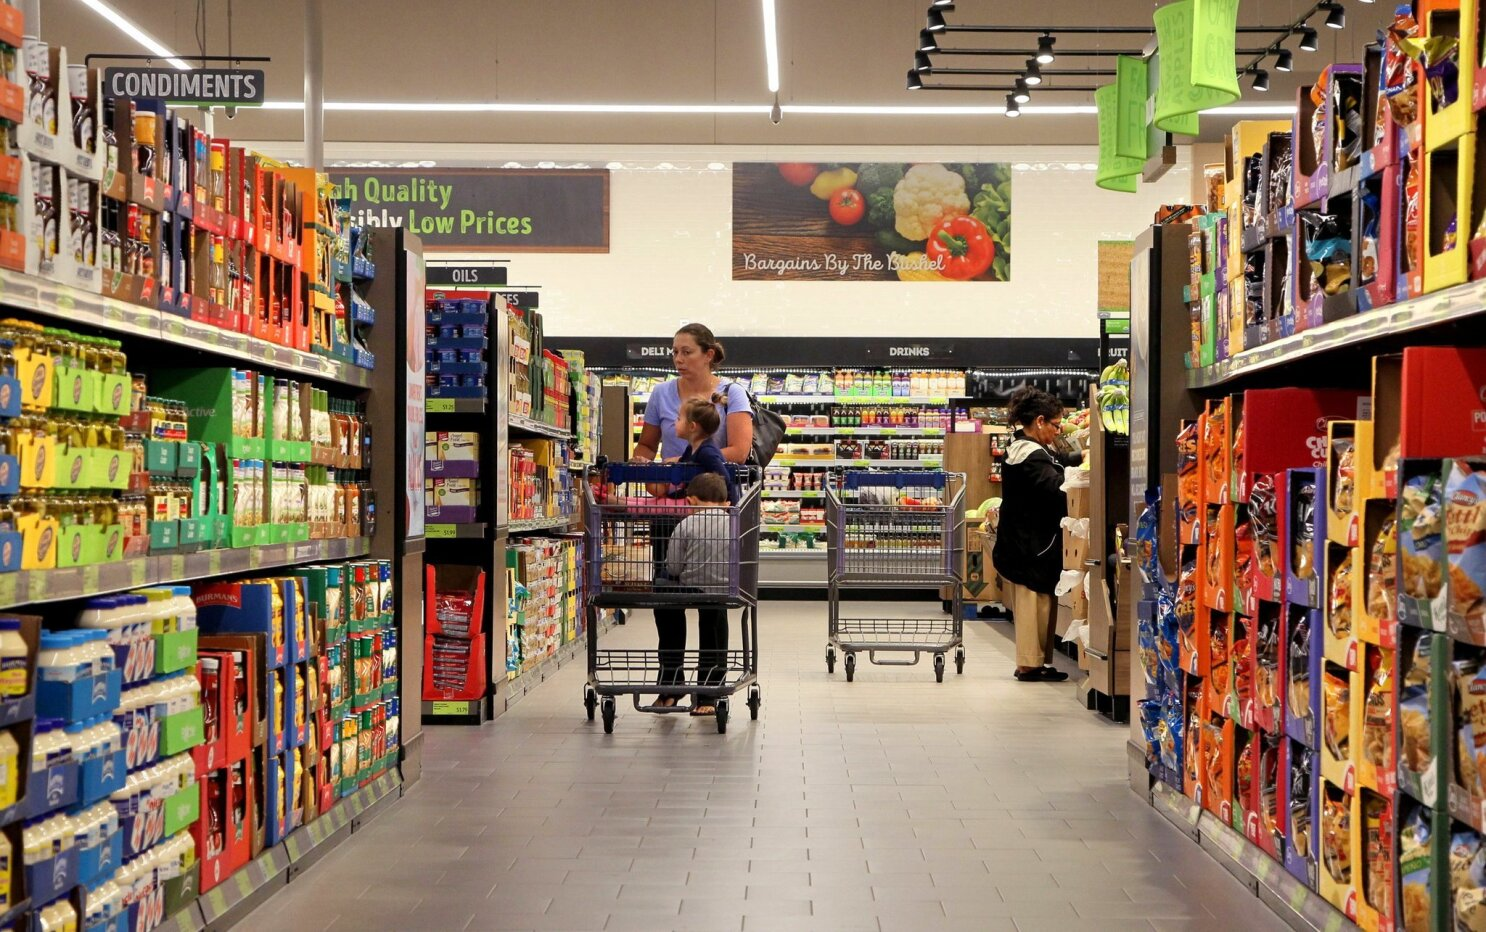 Aldi opens Oceanside location, marking the third opening in San Diego County this year